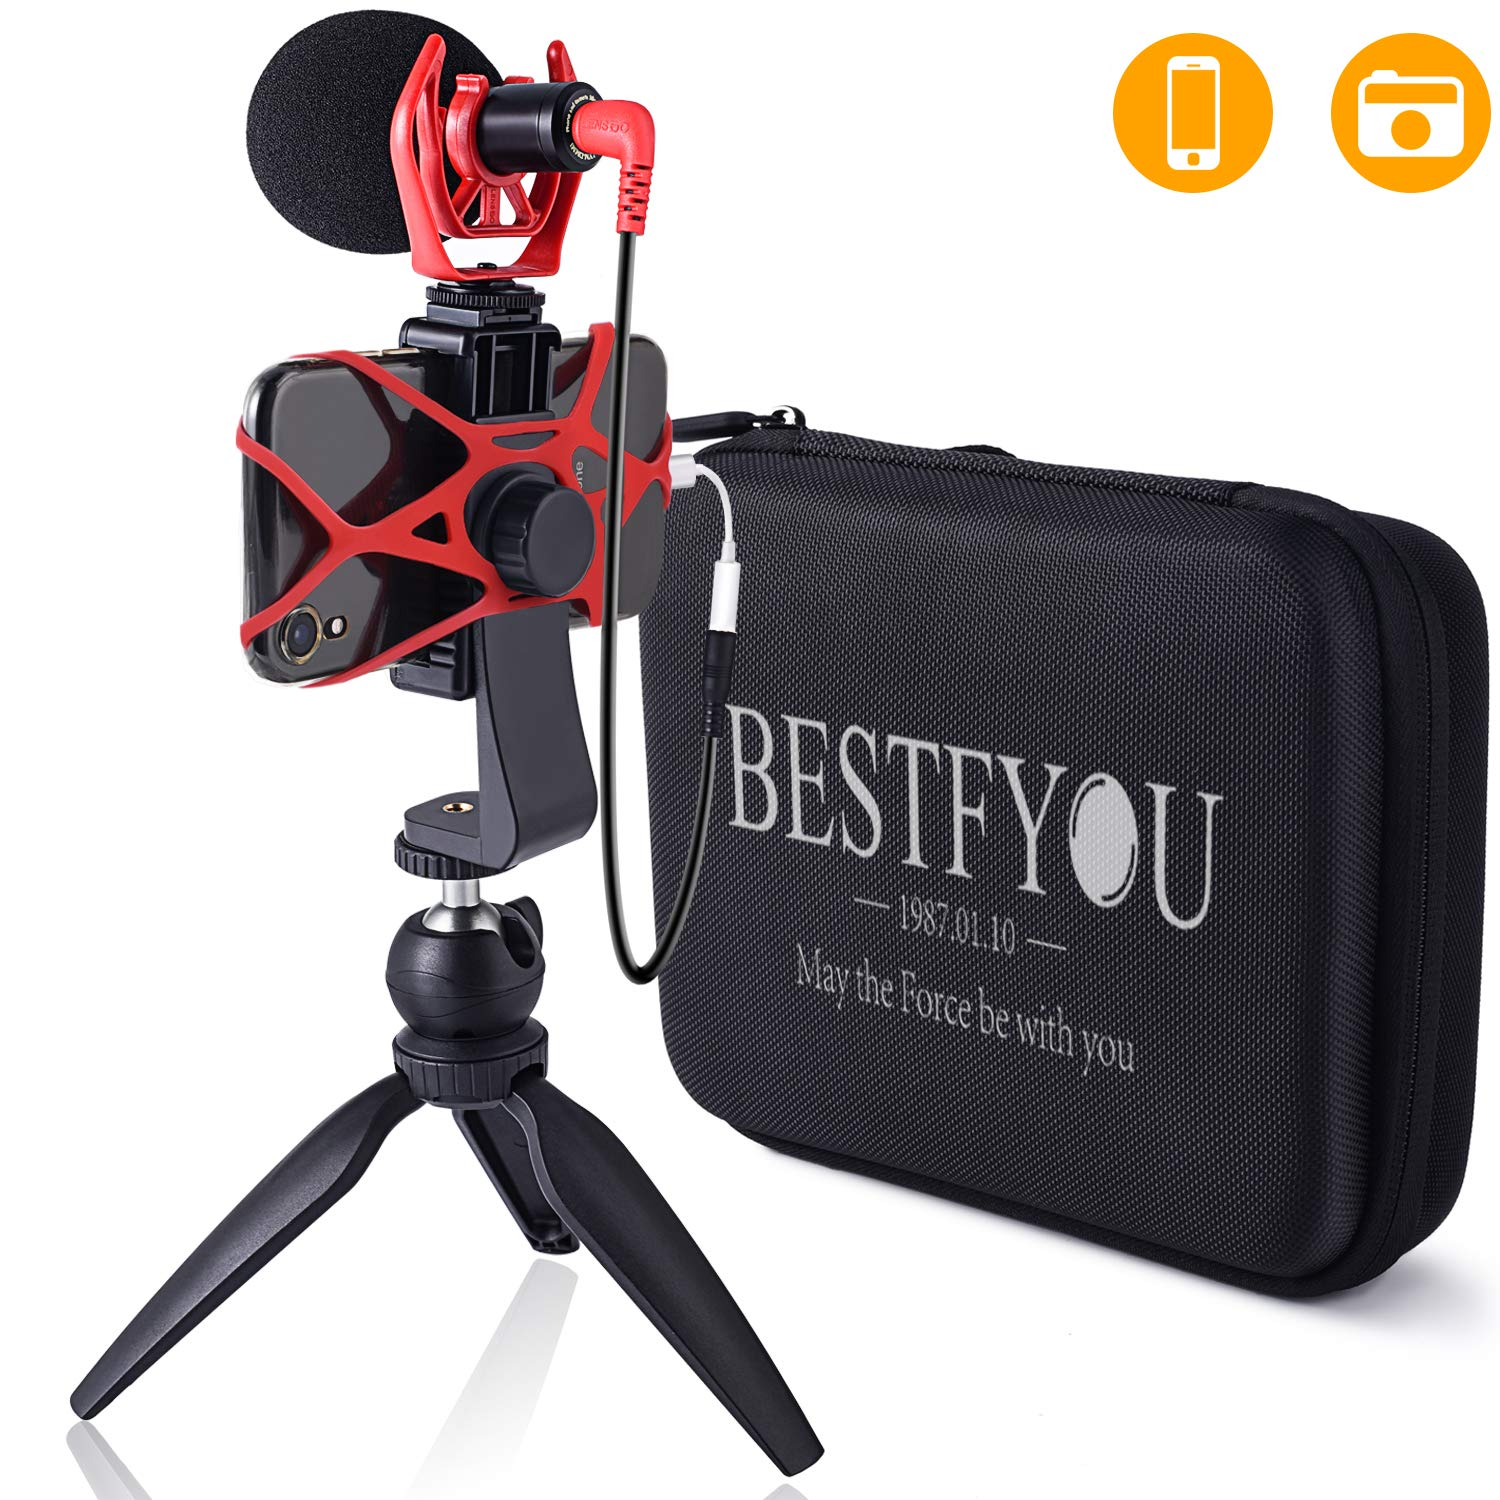 Smartphone Camera Video Microphone with Mini Tripod, Videomicro and Shotgun Microphone for iPhone 6, 6S, 7, 8, X, XR, XS Max Samsung Google - Perfect Vlog, YouTube, Asmr Mic -Perfect Video Kit by BESTFYOU